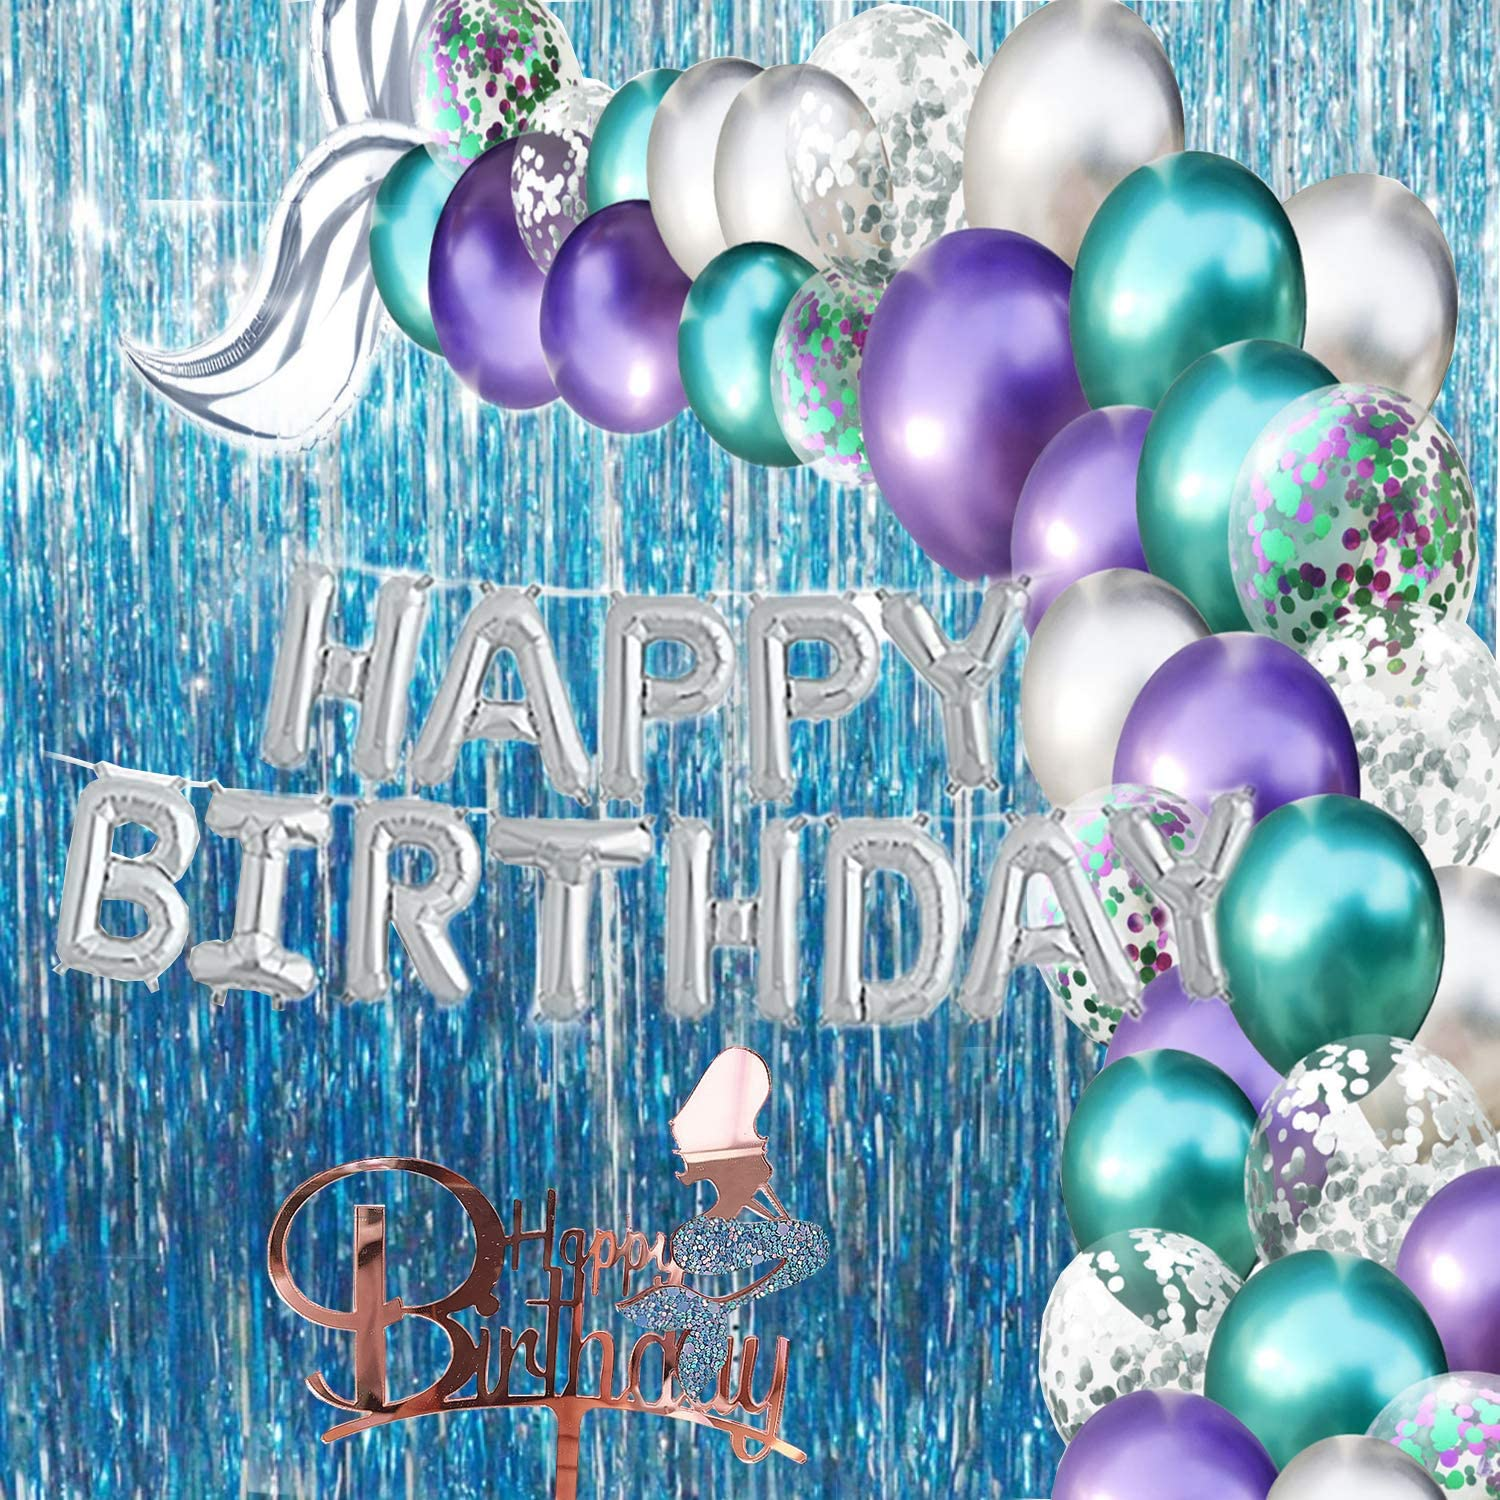 Little Mermaid Party Supplies And Decorations Under The Sea Birthday Pack Kit With Balloons Garland Arch Baby Girl Ocean Theme Happy Birthday Walmart Com Walmart Com